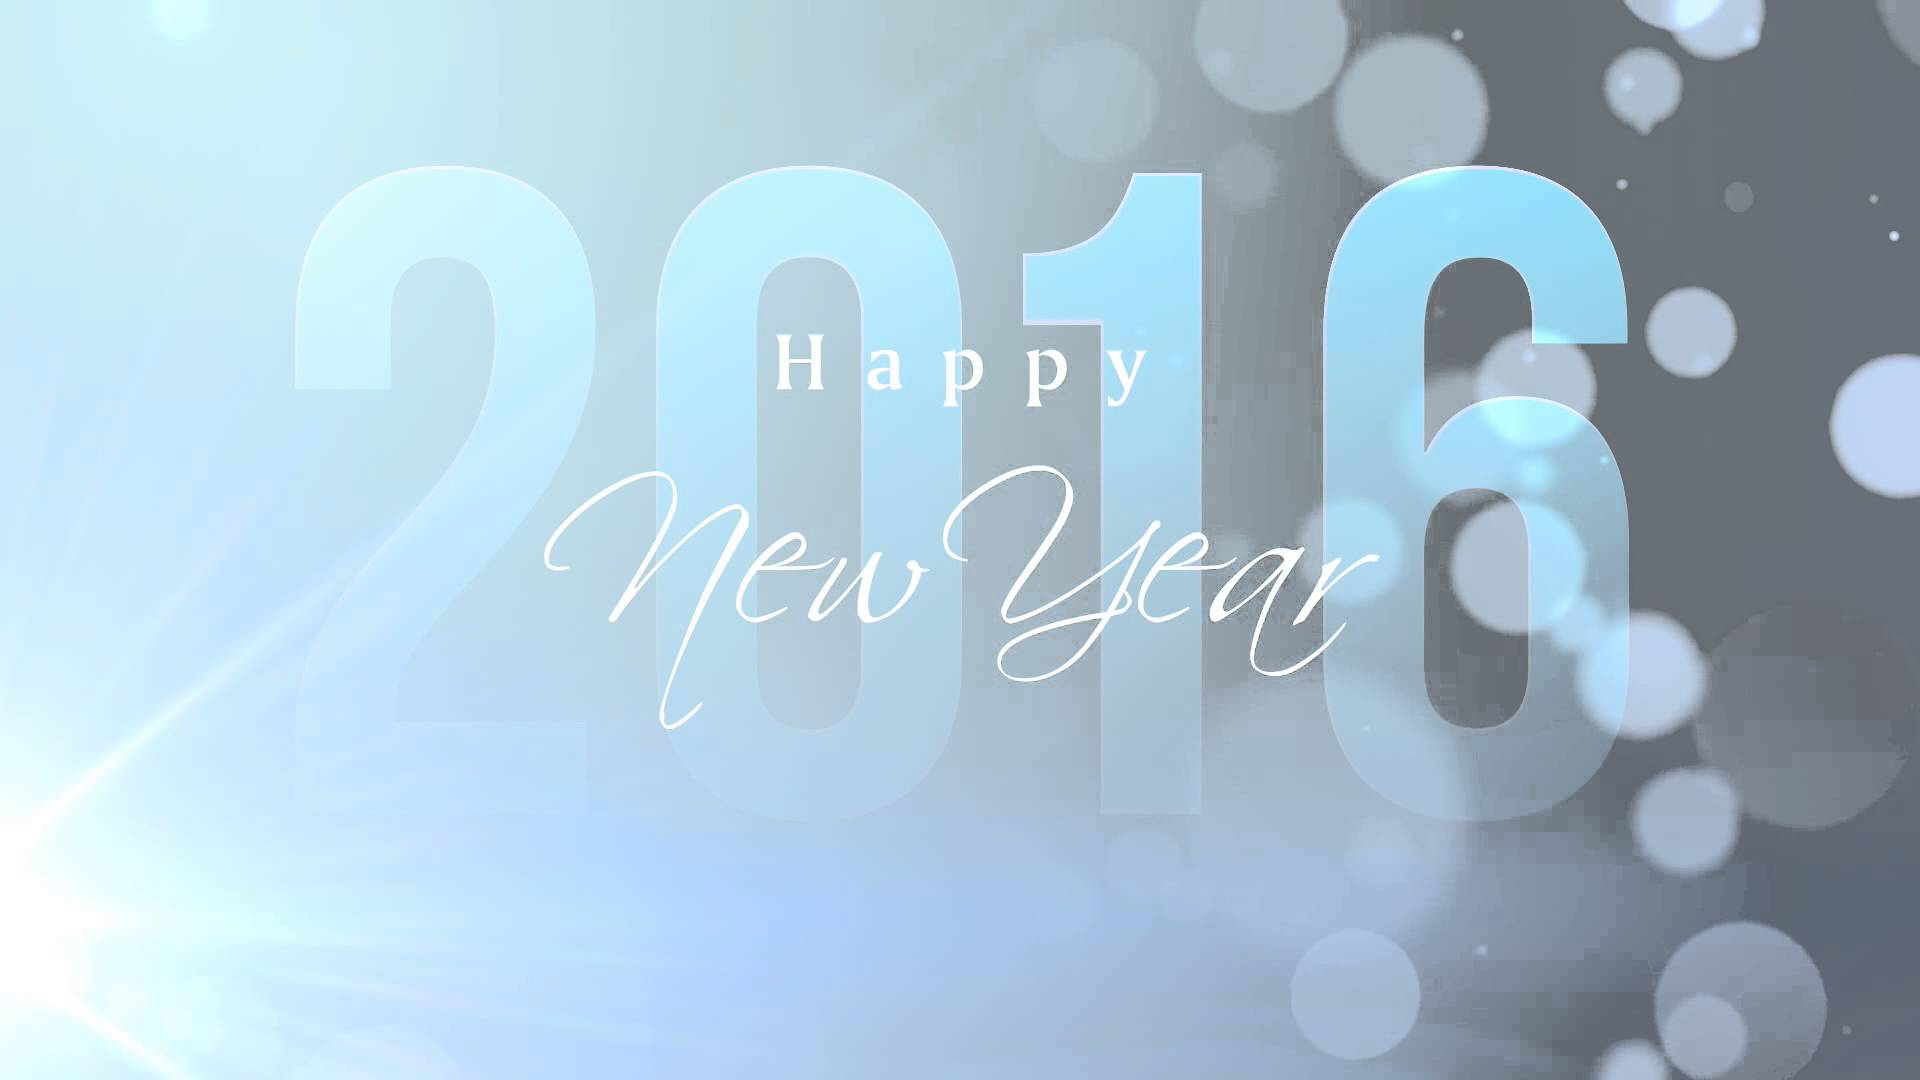 New Best Wallpapers 2016: Happy New Year 2016 Wallpapers